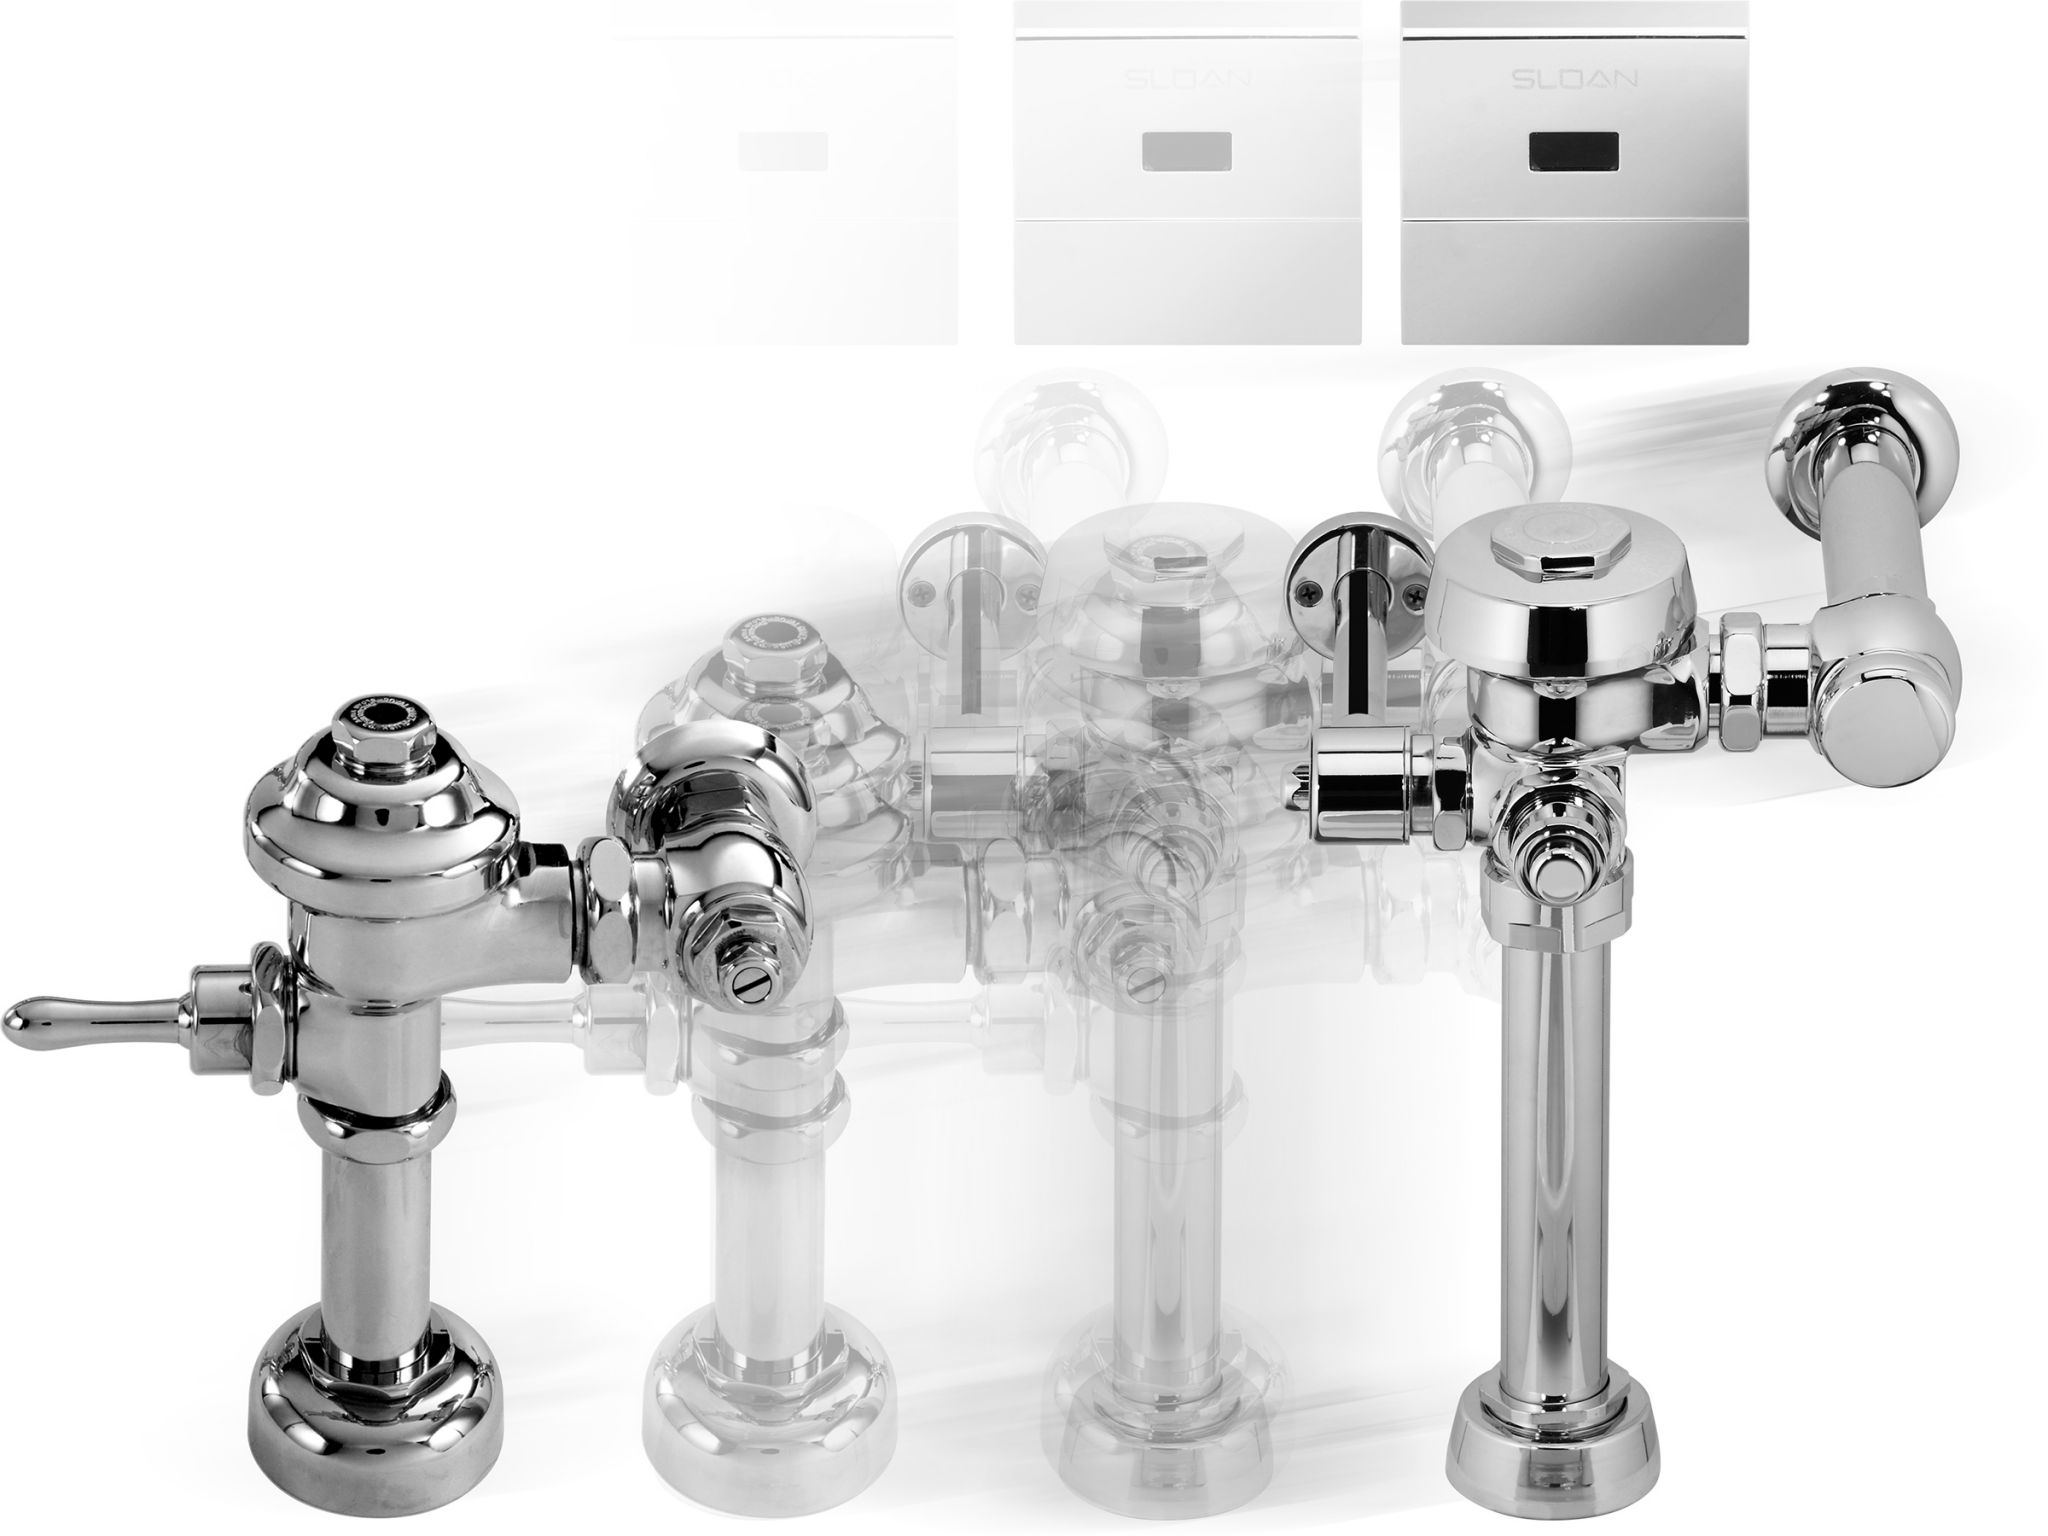 The fl ush valve design has evolved as they are engineered to consume less and less water.